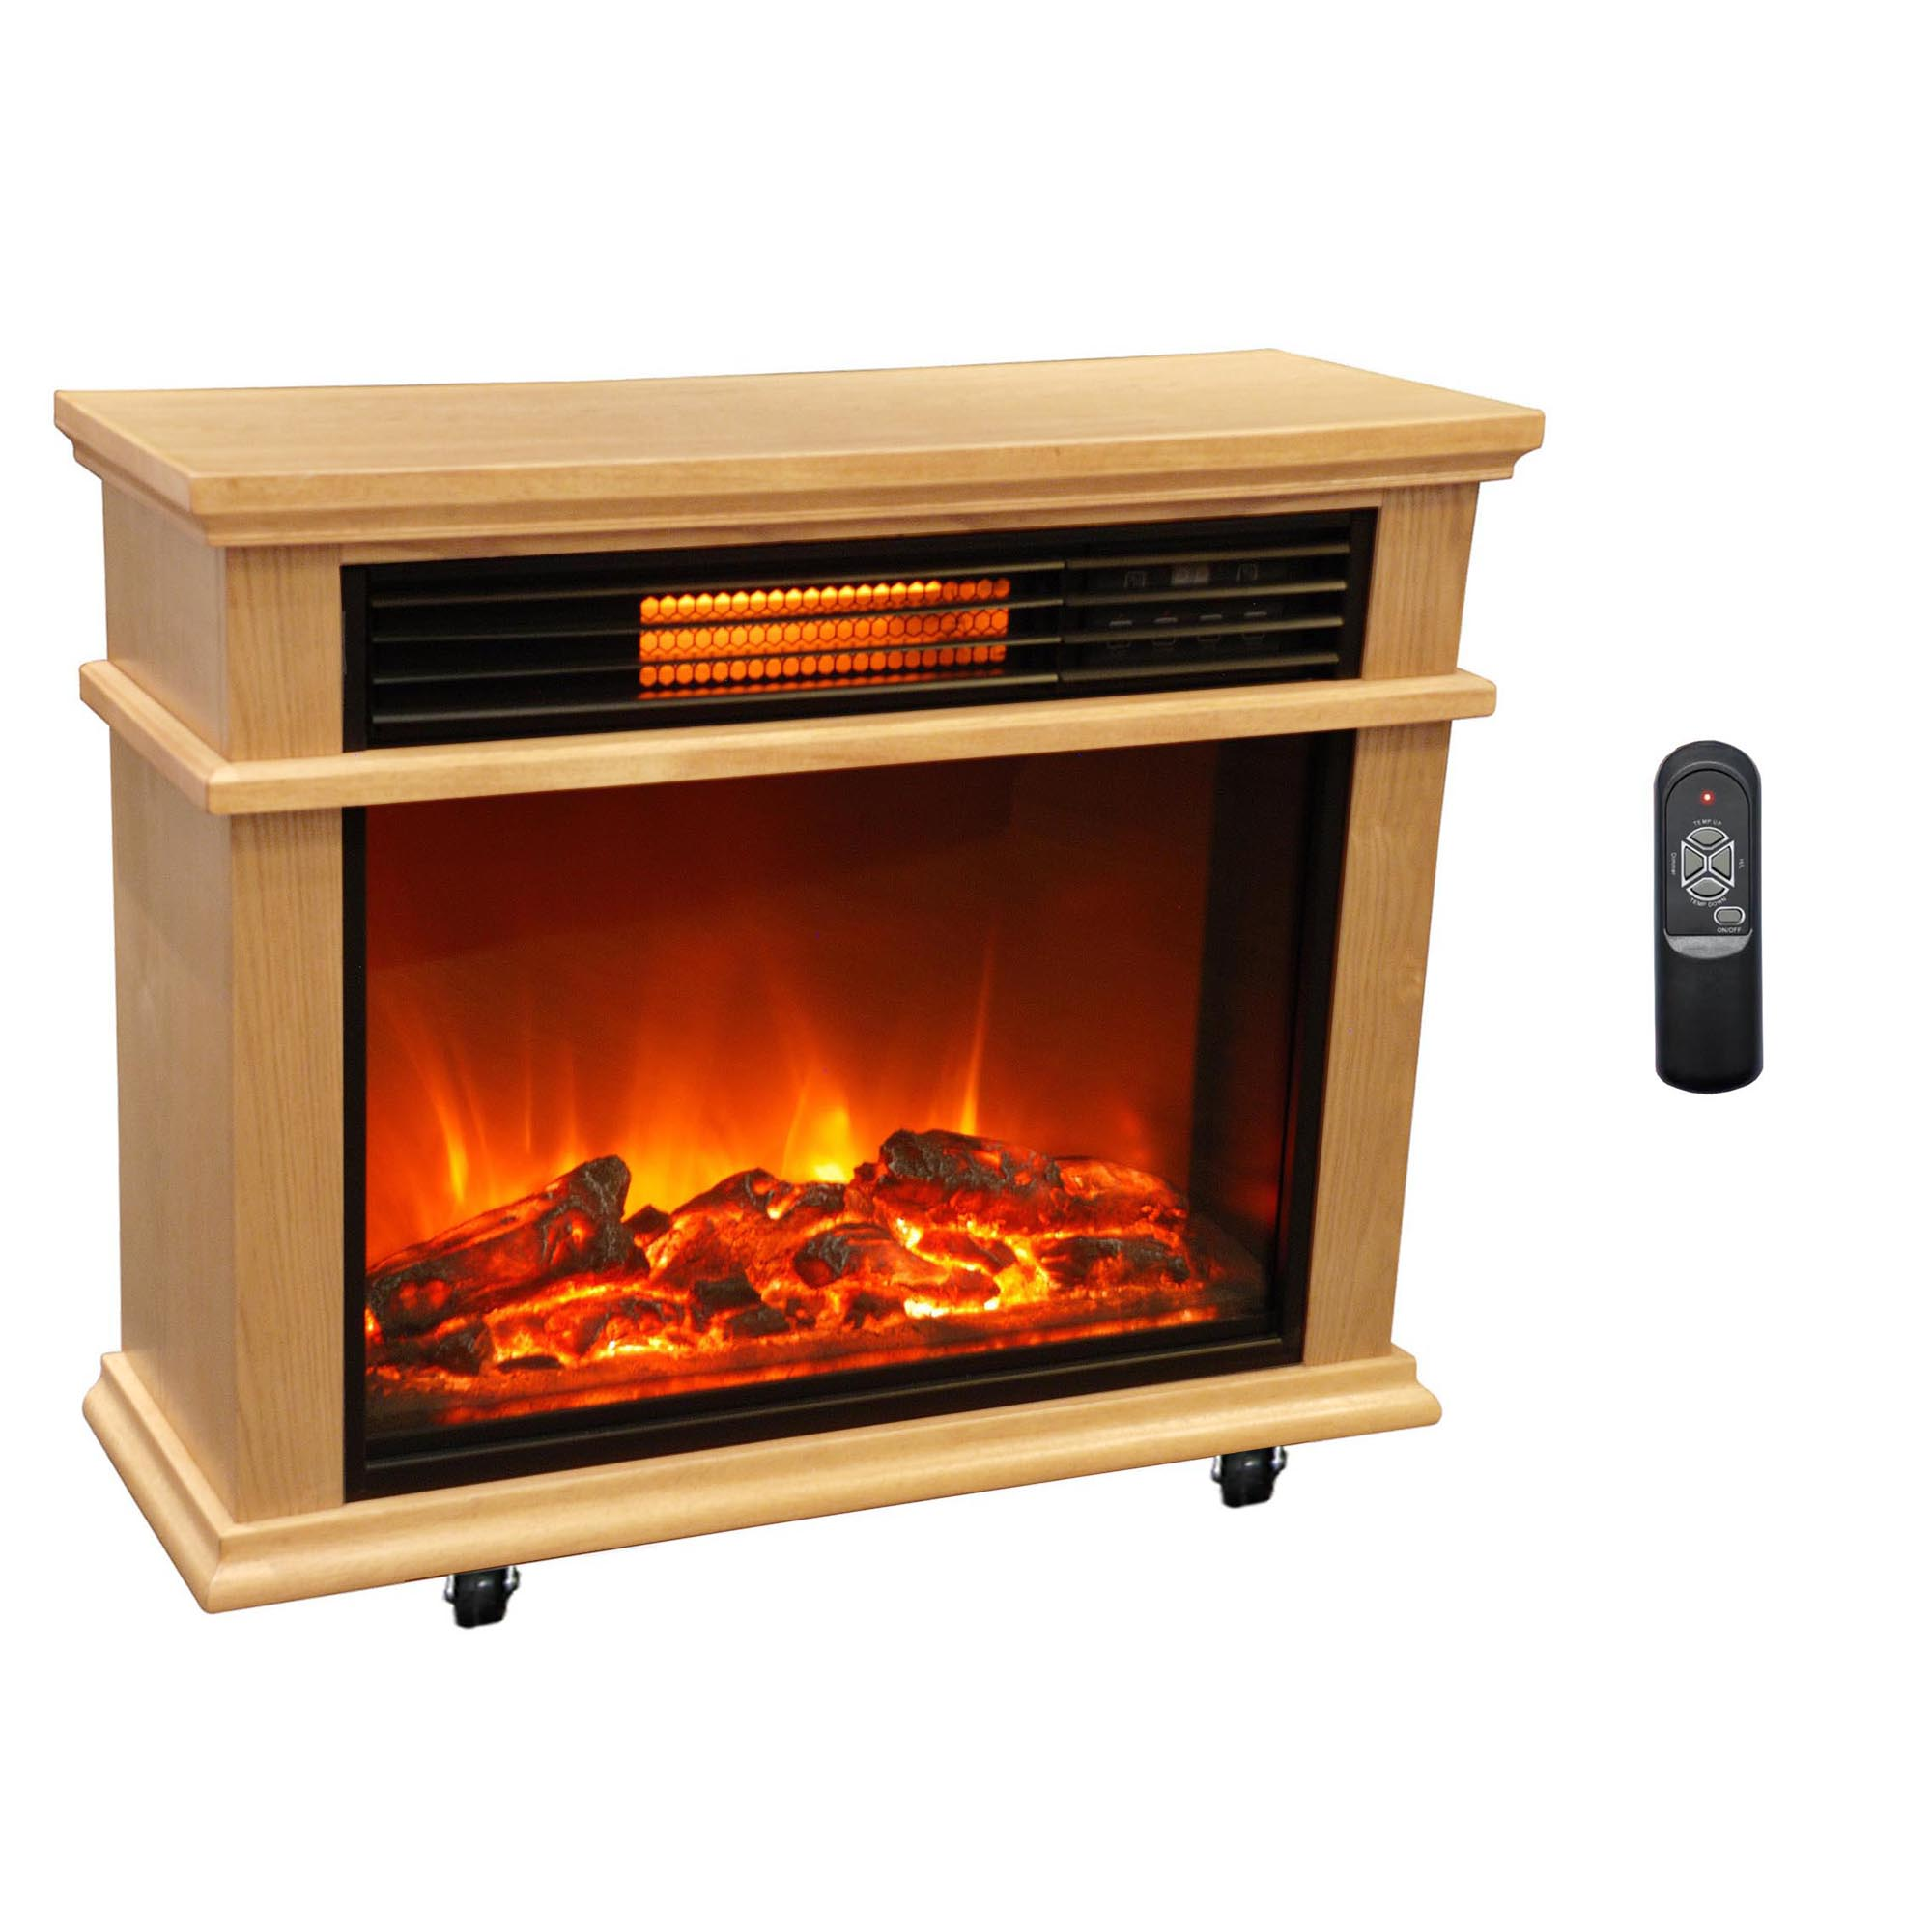 LifeSmart LifePro LS-2003FRP13 1500W 3 Element Infrared Quartz Fireplace Heater